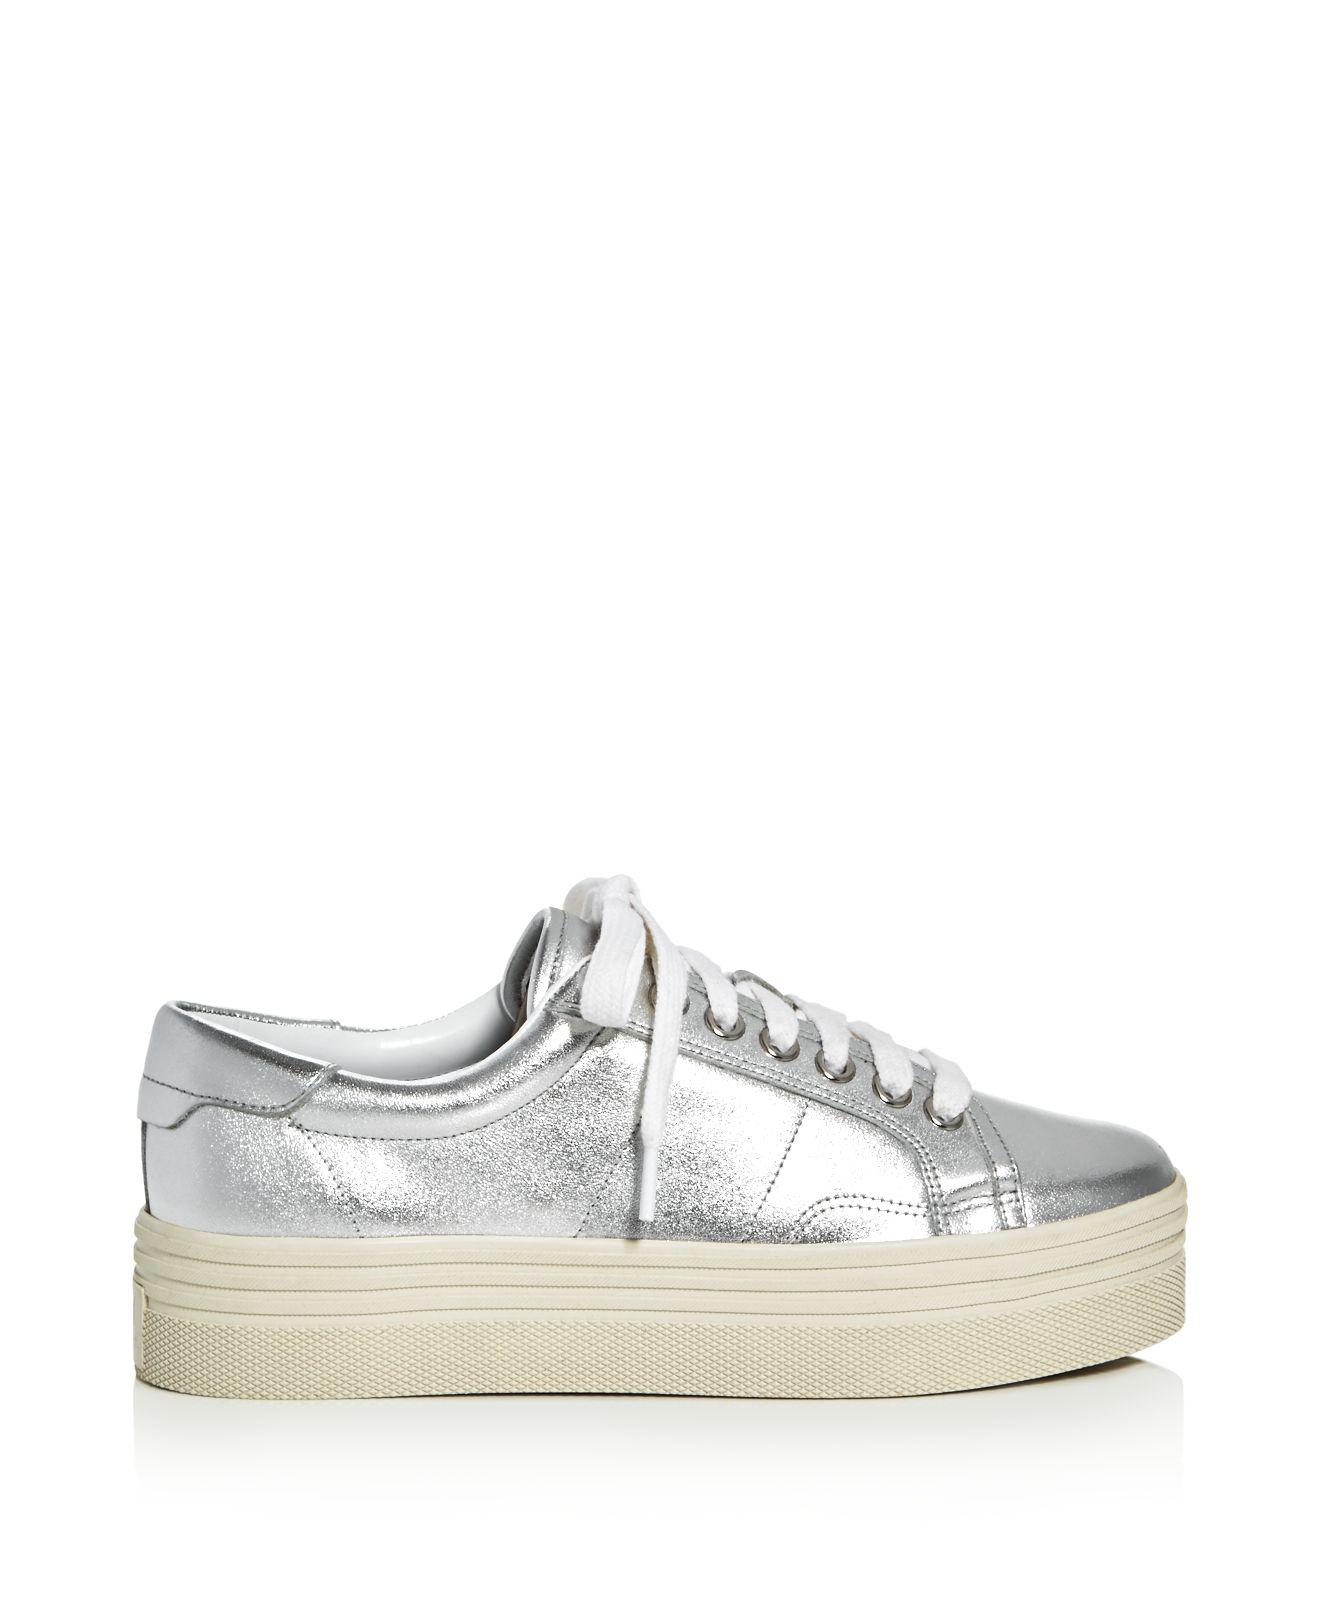 94256e1b7a66 Lyst - Marc Fisher Emmy Metallic Lace Up Platform Sneakers in Metallic